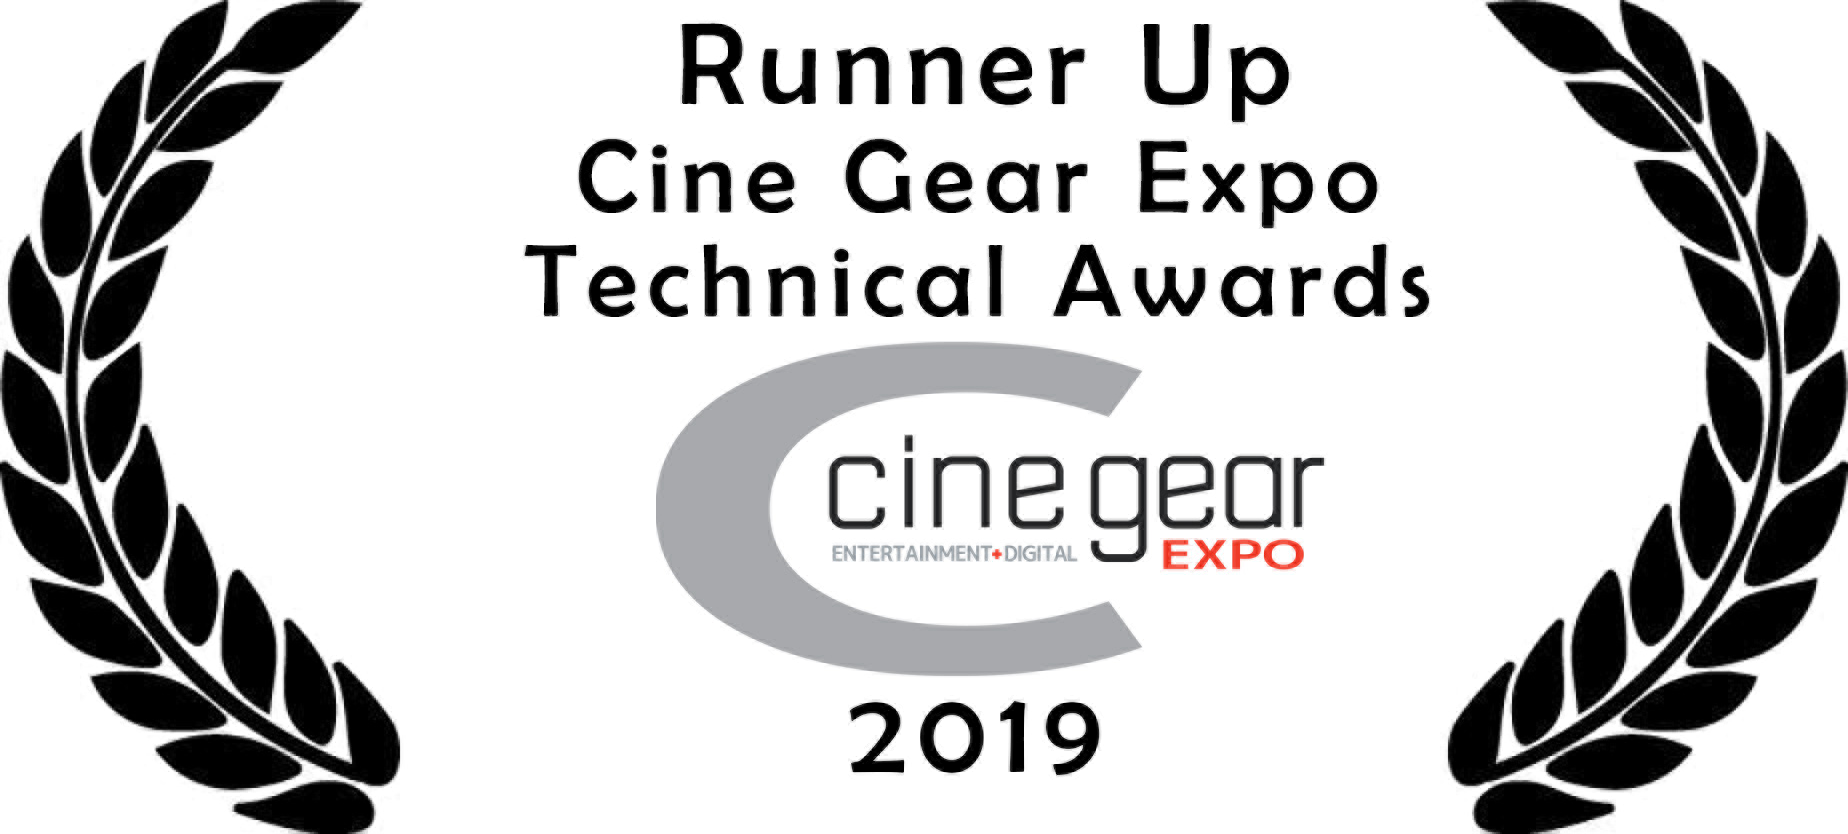 SHAPE Push-Button Technology Recognized at Cine Gear Expo Awards 2019